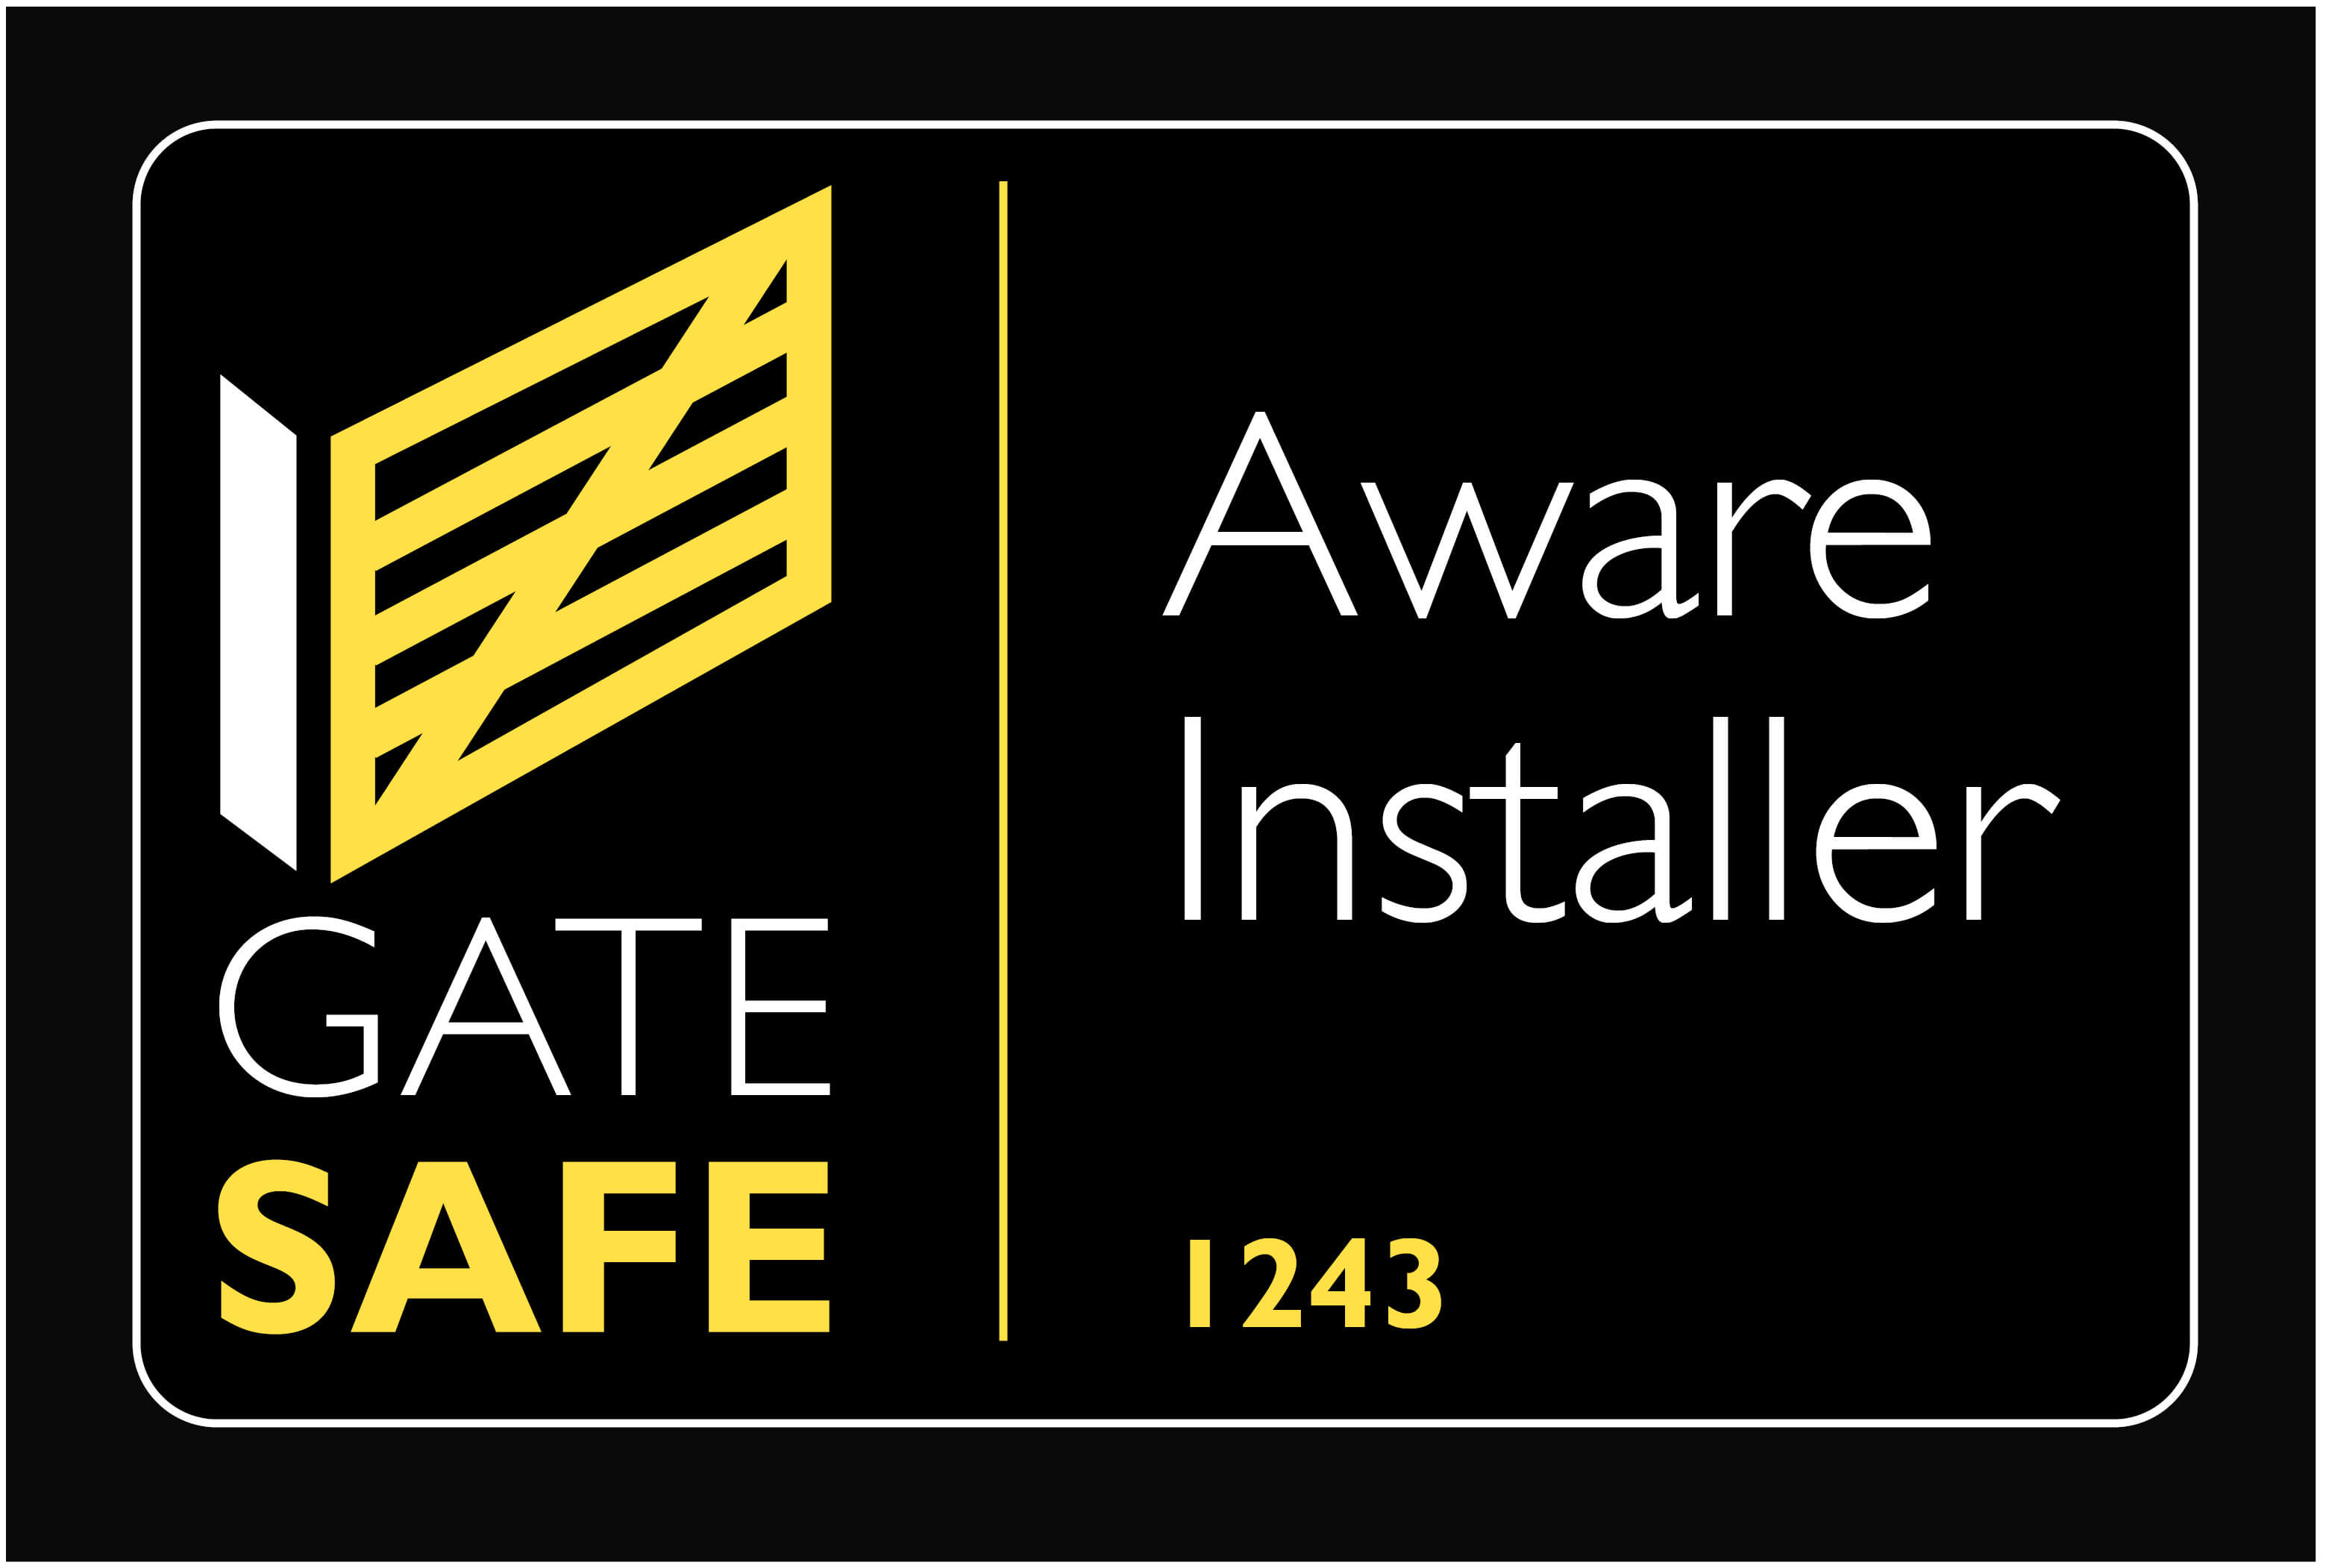 Gate Safe 'Aware Installer' badge